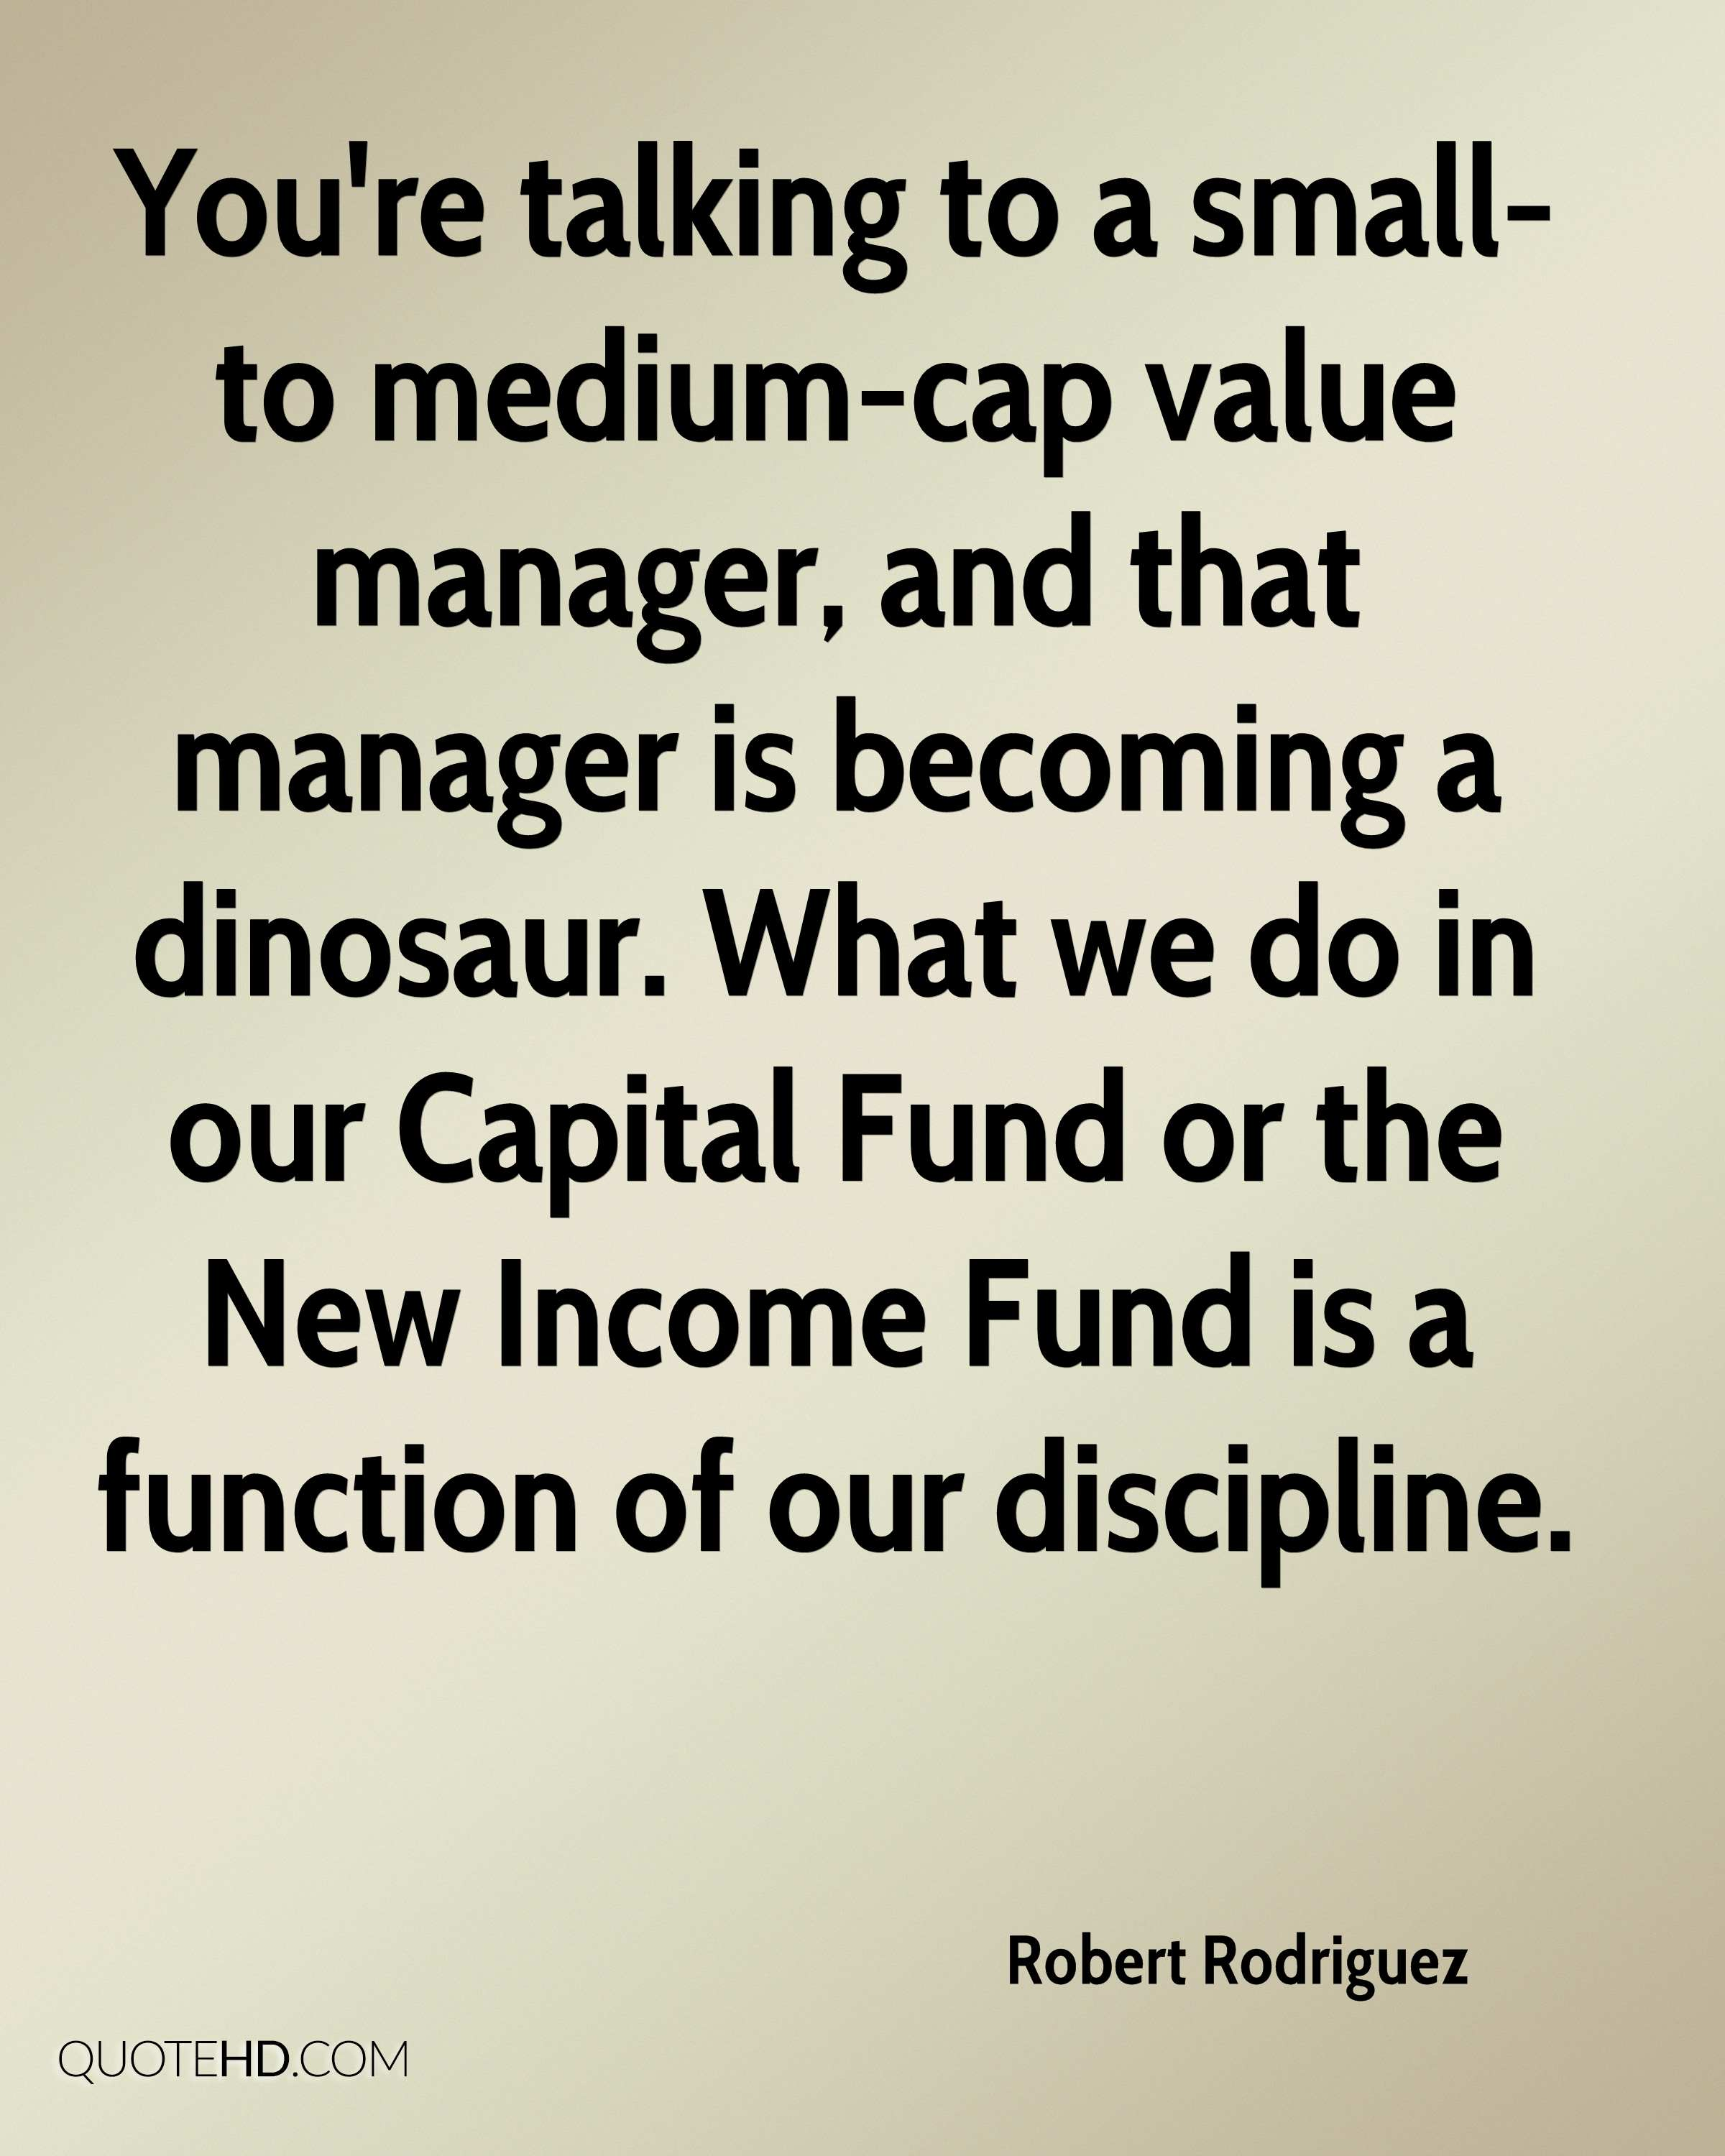 You're talking to a small- to medium-cap value manager, and that manager is becoming a dinosaur. What we do in our Capital Fund or the New Income Fund is a function of our discipline.